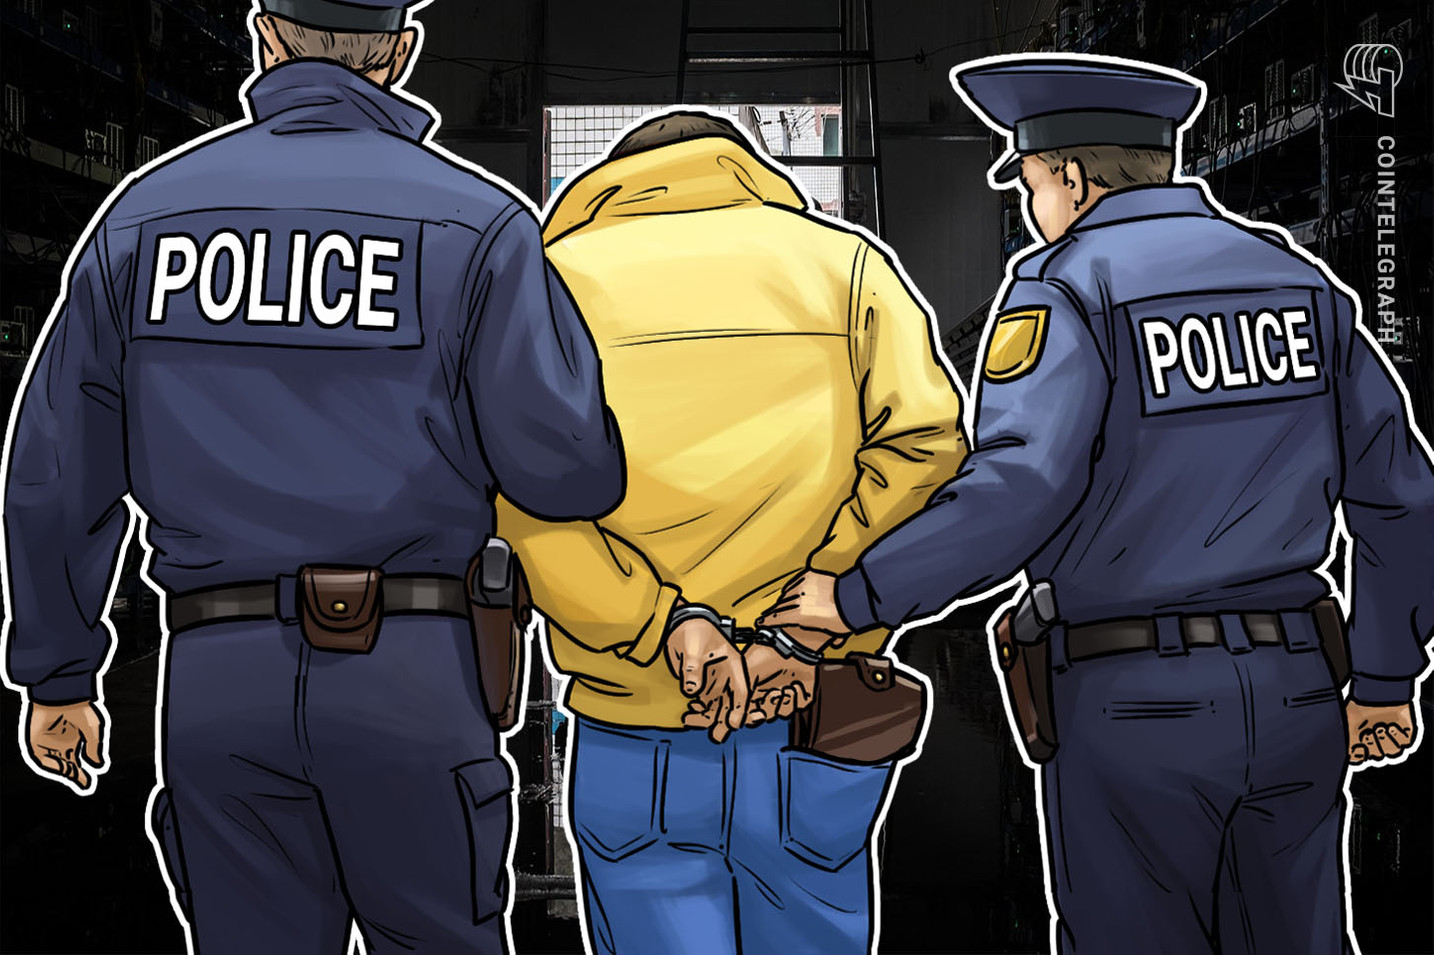 Germany: Suspects Arrested for Stealing Electricity in Crypto Mining Operation